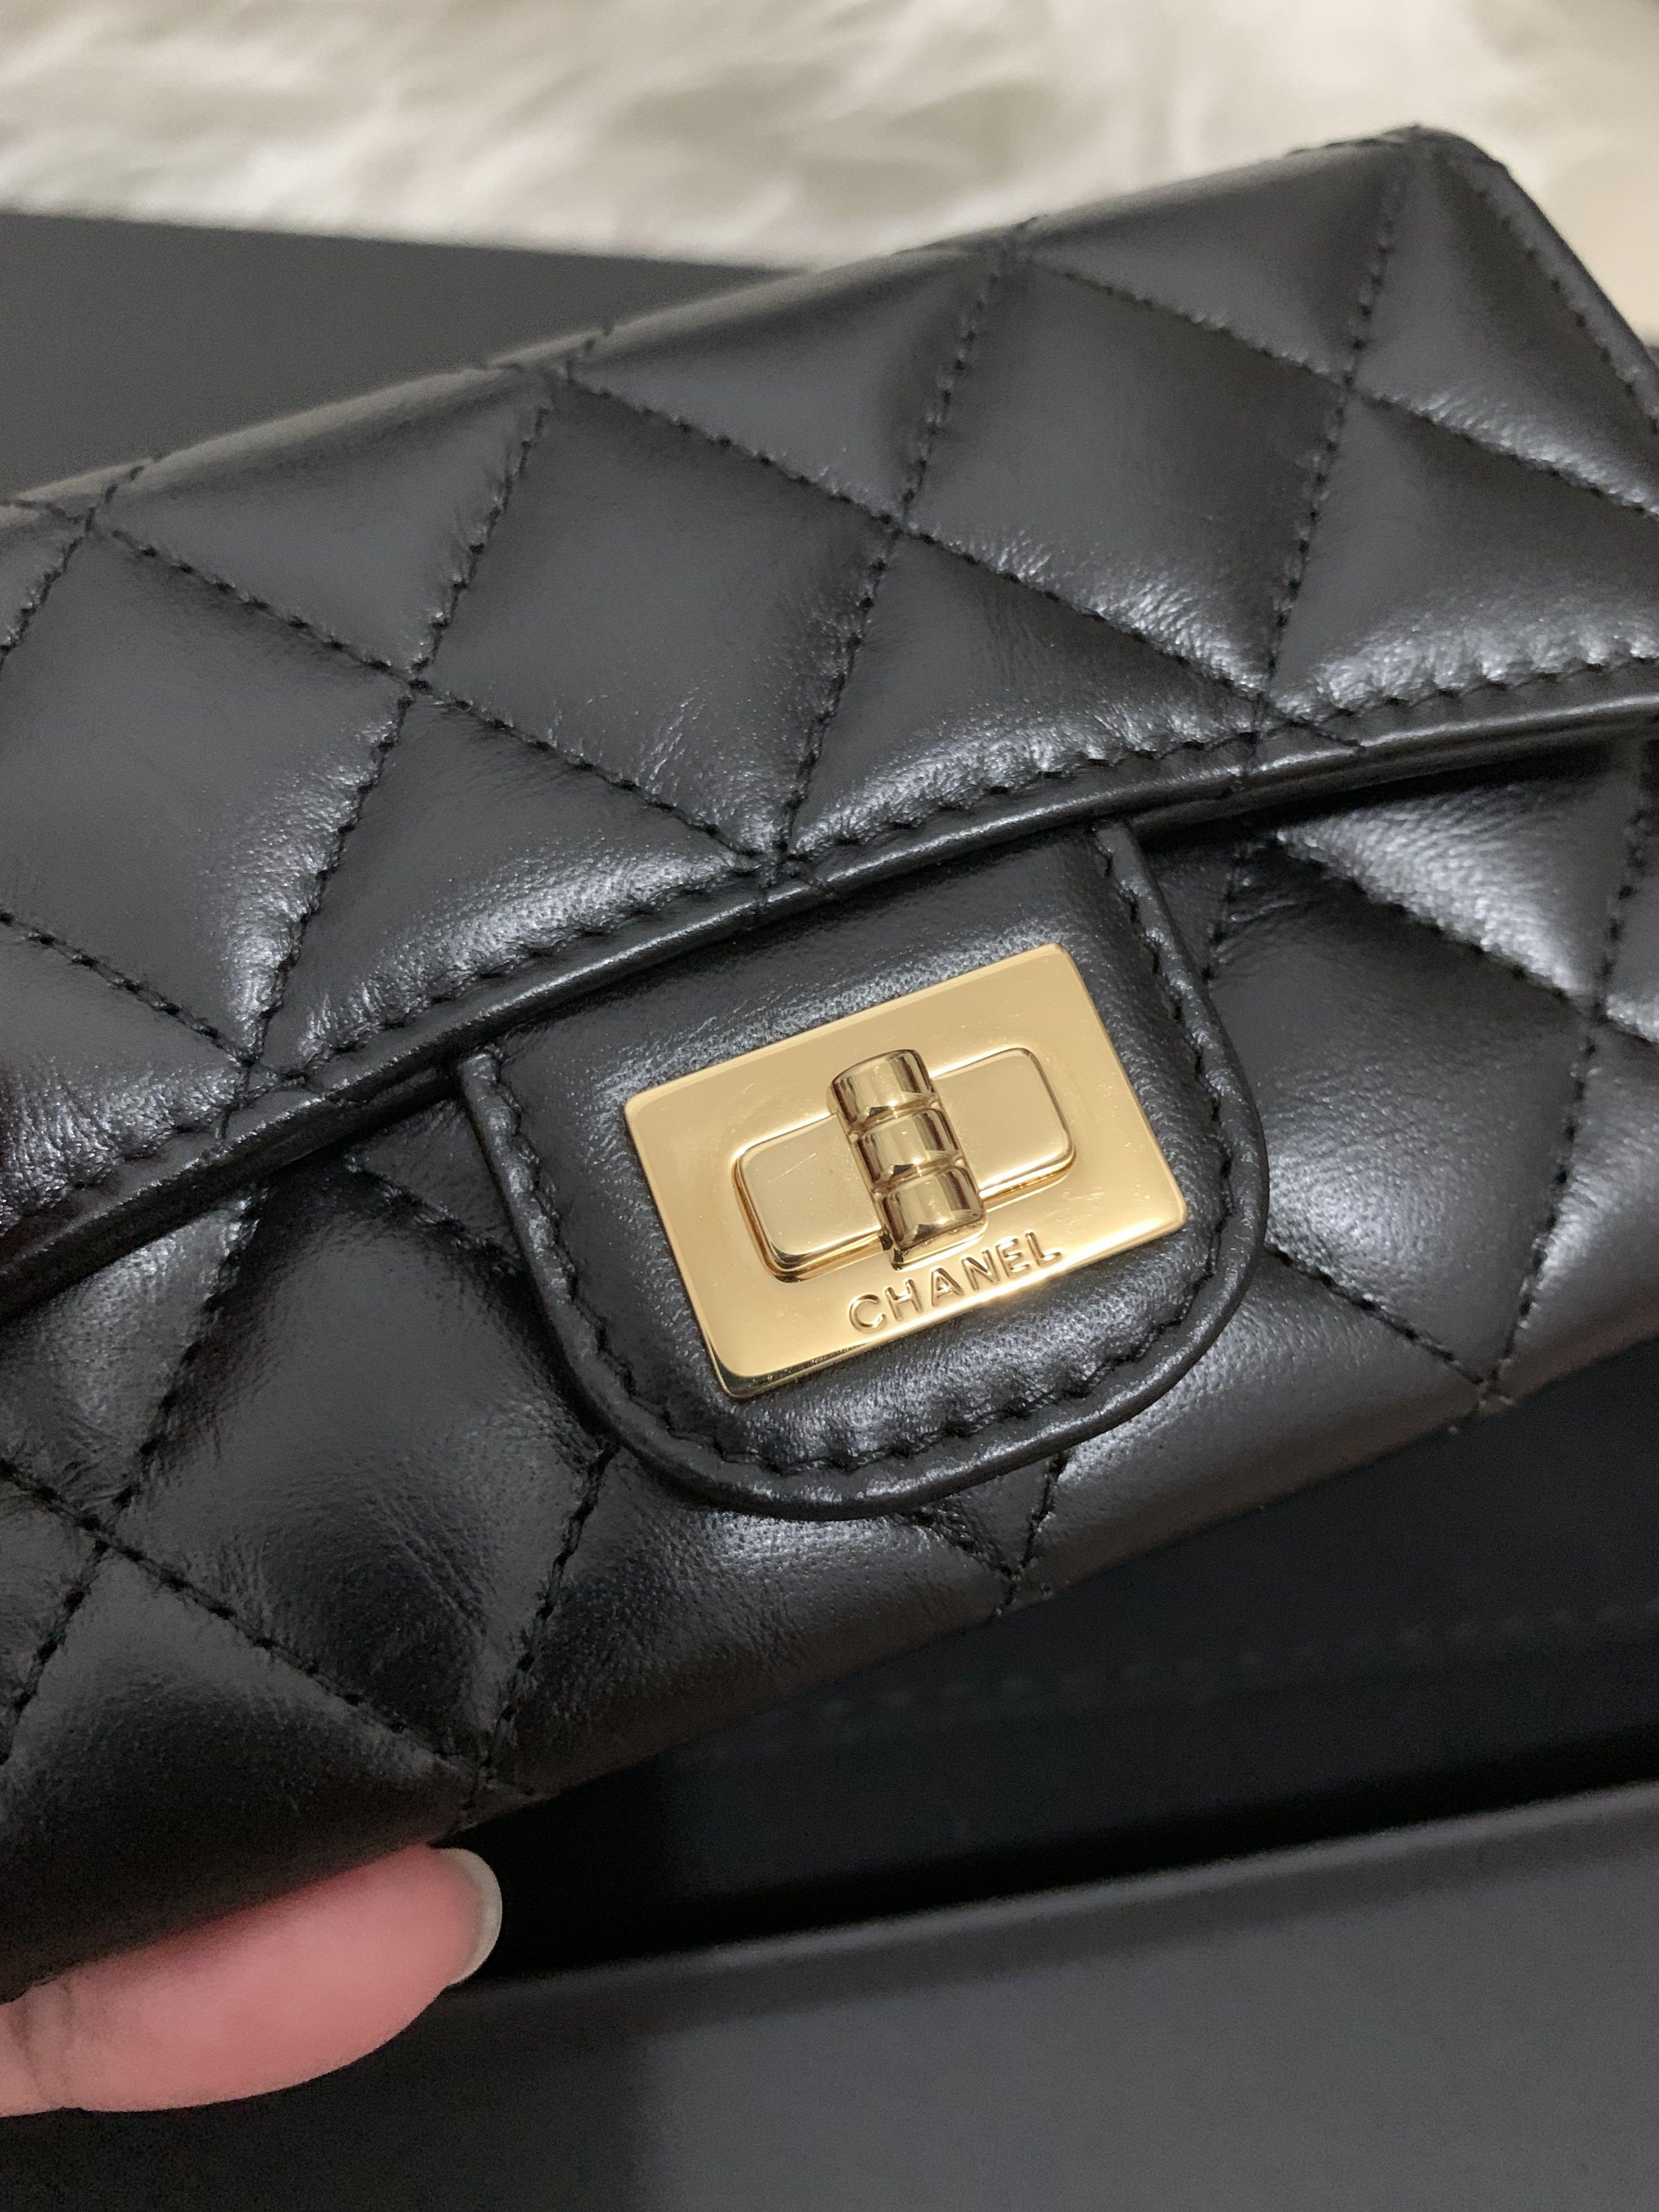 Chanel reissue Card holder / wallet